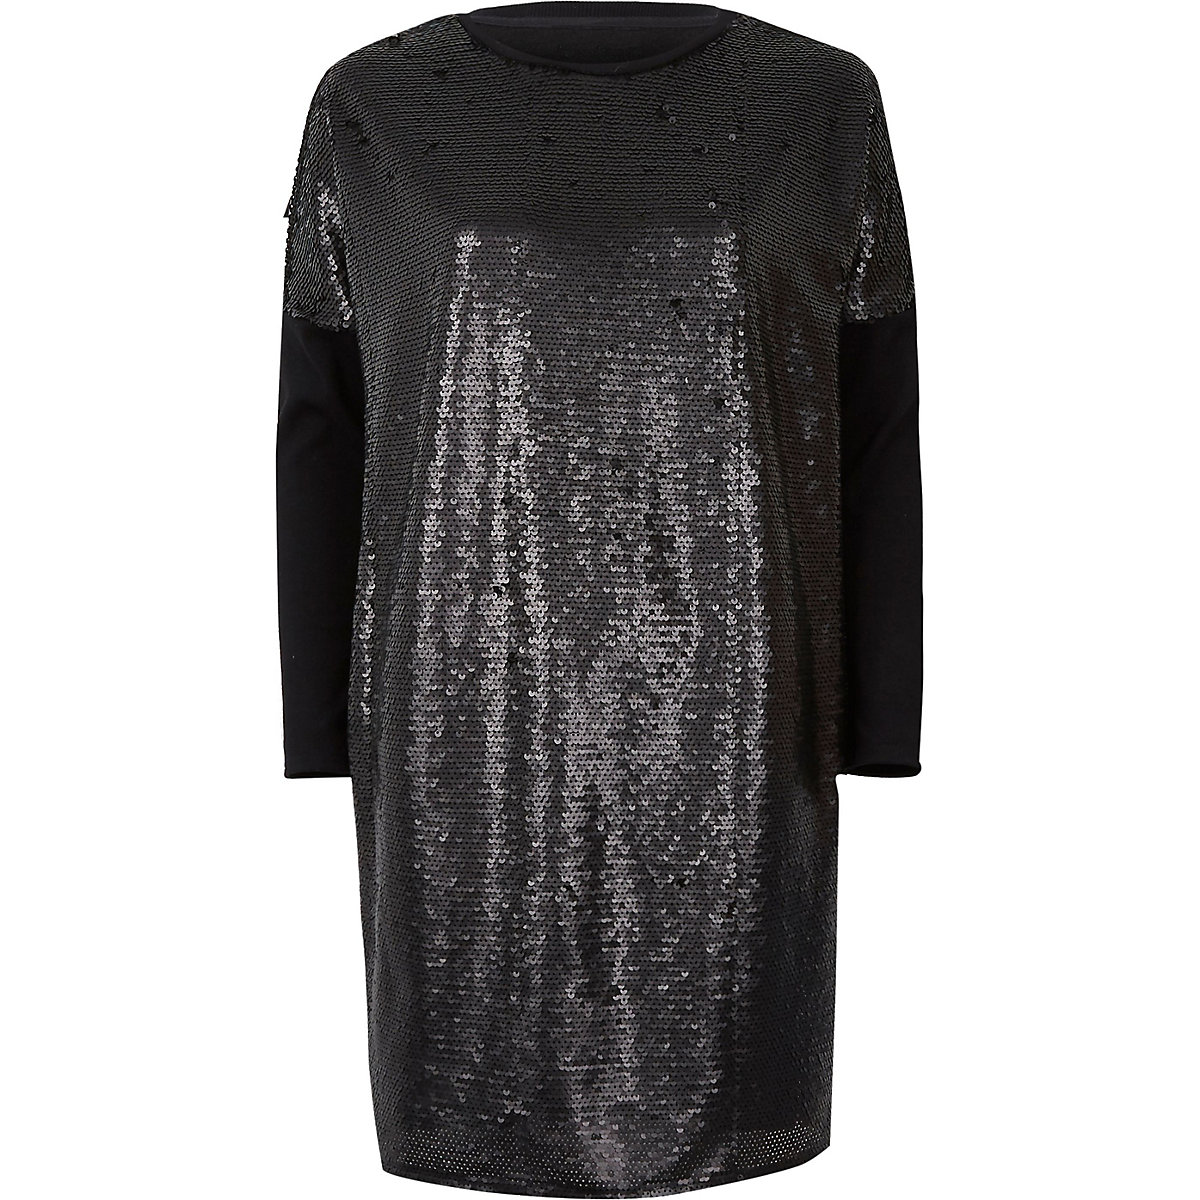 Black sequin oversized long sleeve T-shirt